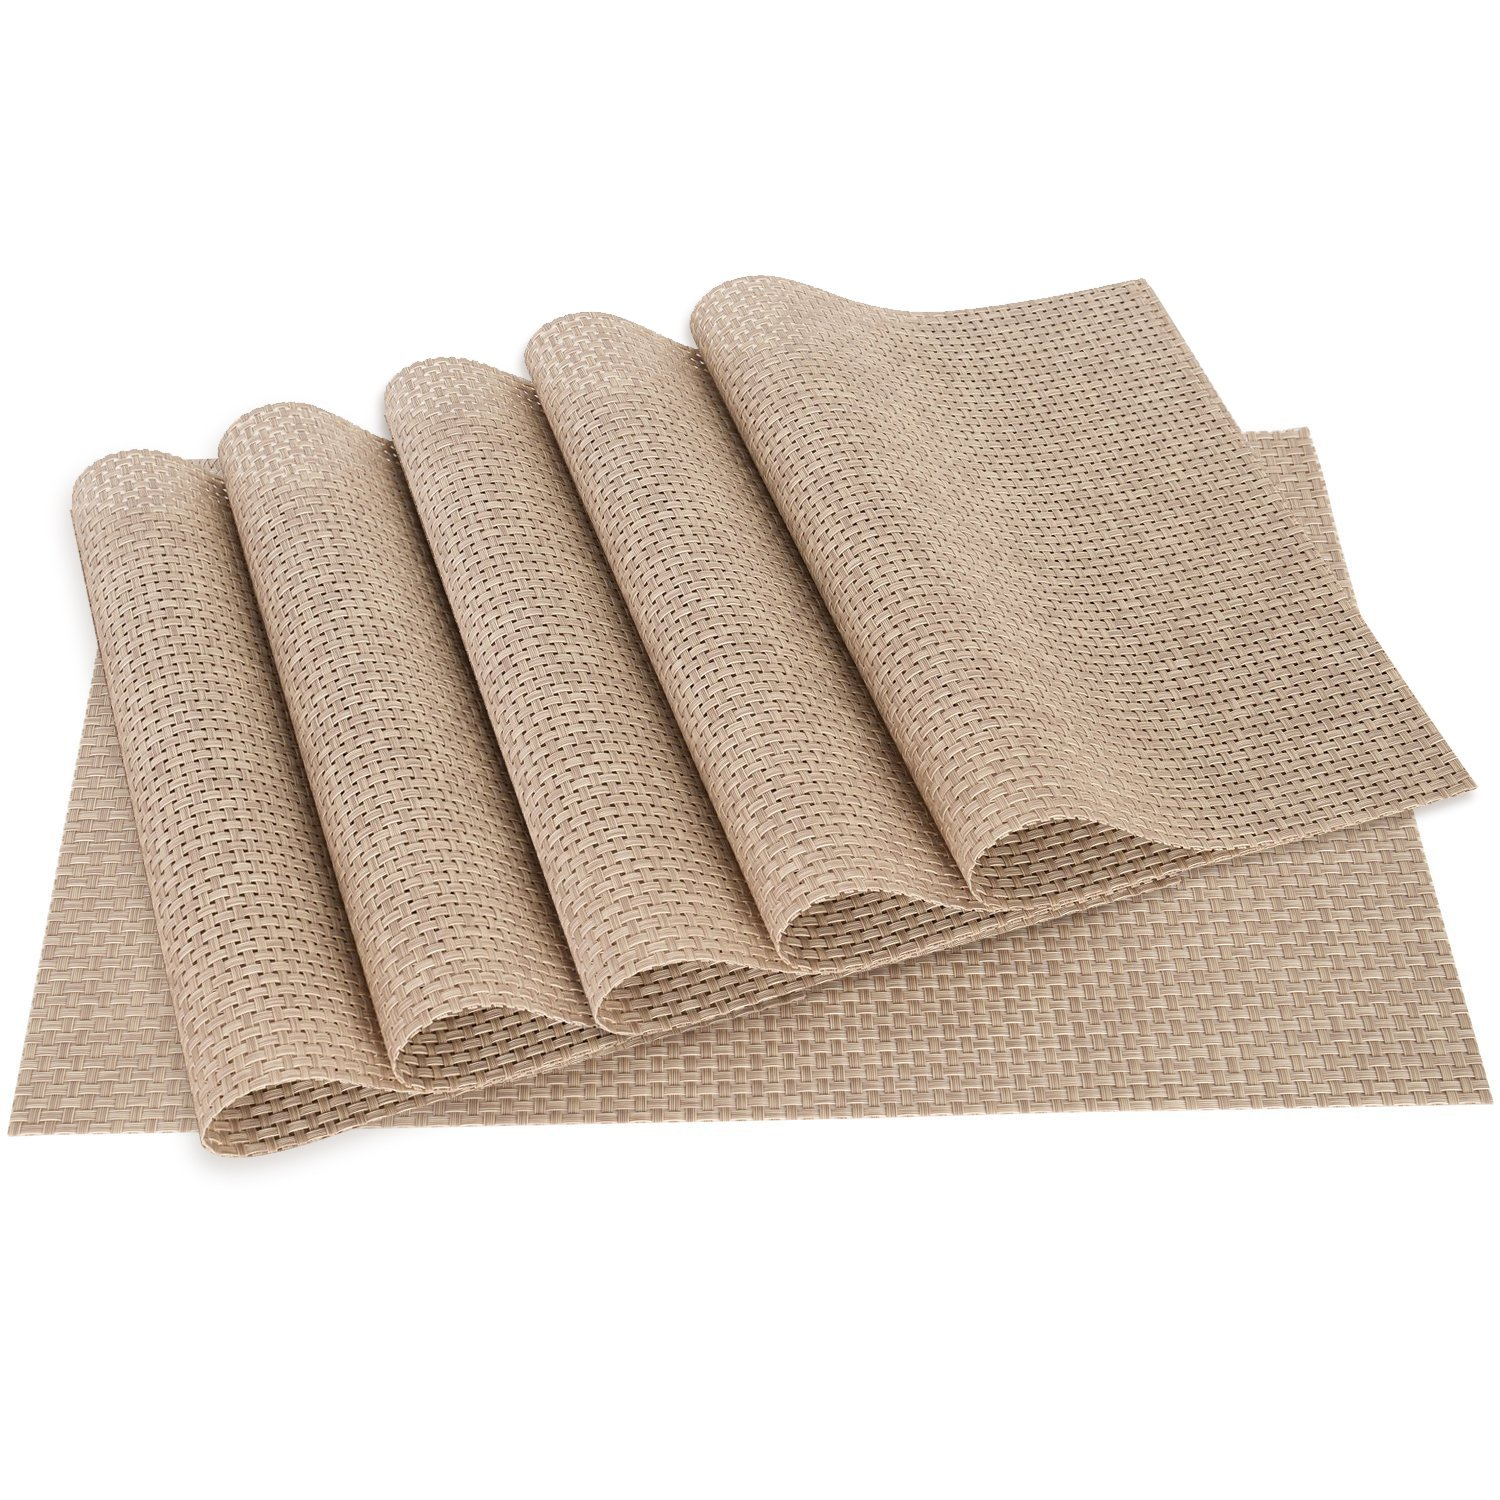 Homcomoda Table Mats Washable PVC Dining Place Mats Non-slip Heat-resistant Vinyl Placemats Set of 6 (Beige)